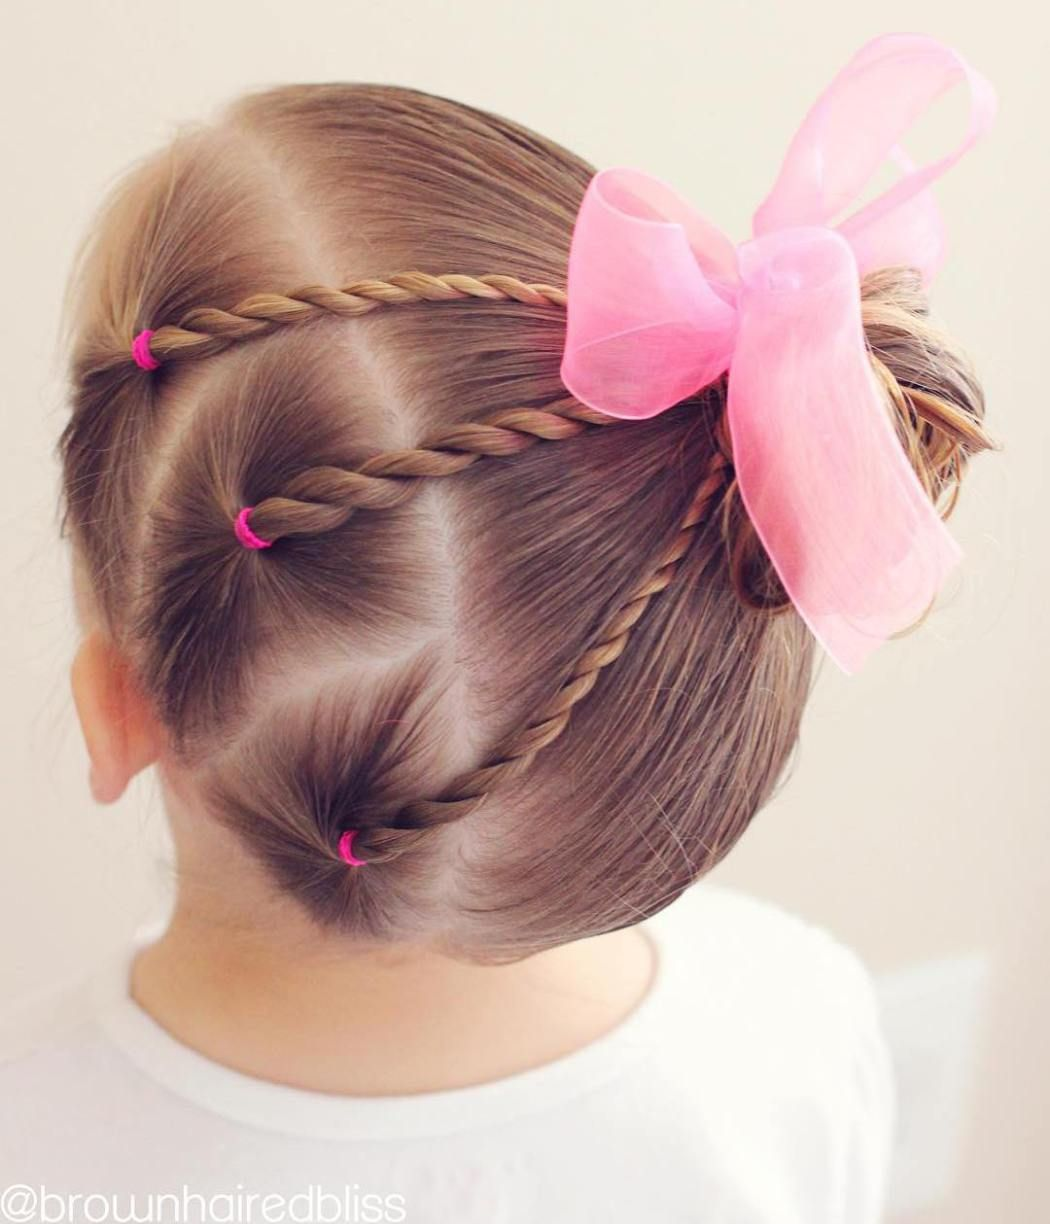 Hairstyles For Toddlers Impressive 40 Cool Hairstyles For Little Girls On Any Occasion  Pinterest